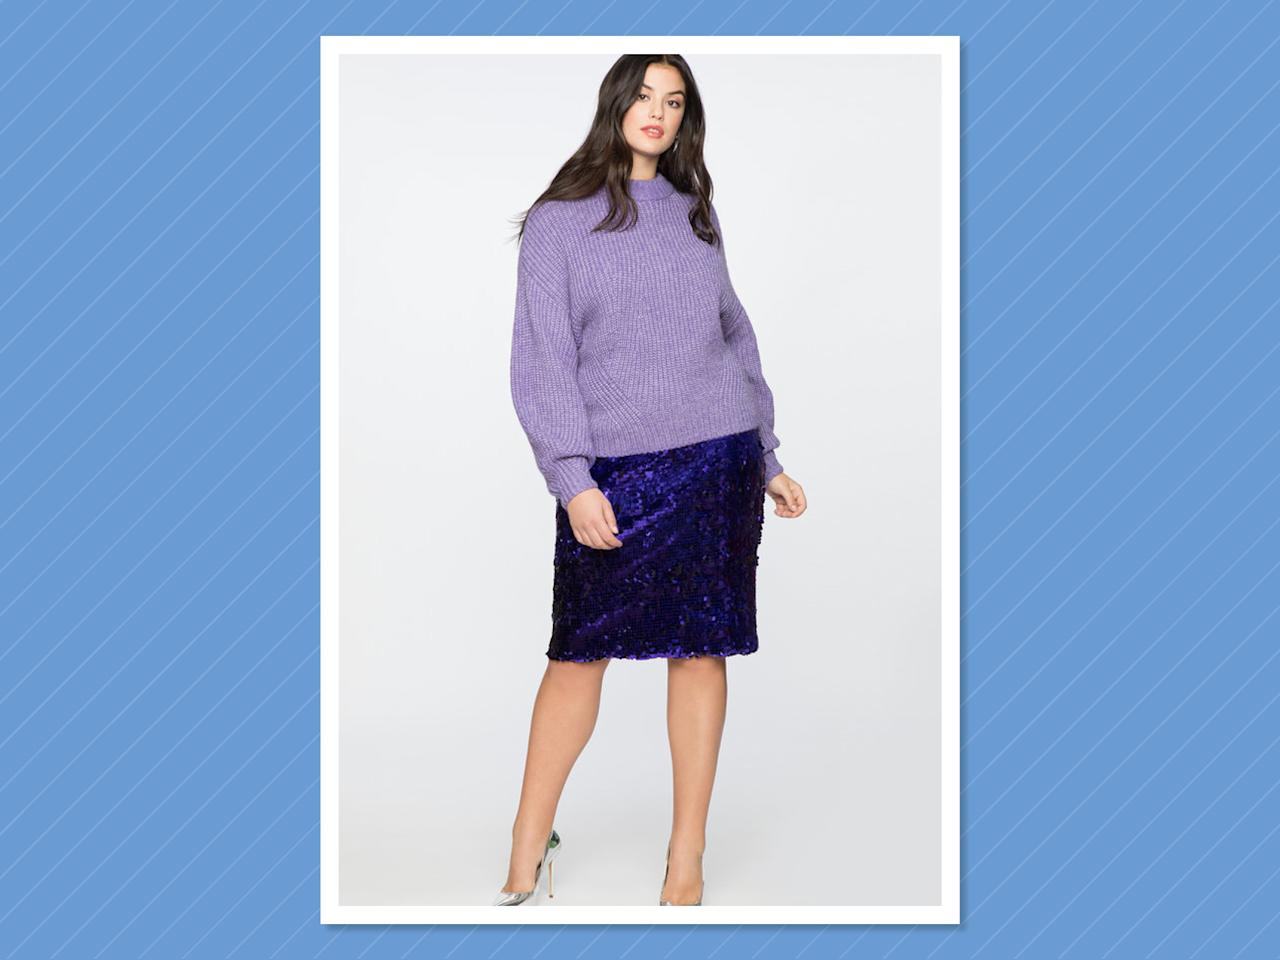 "<p>Purple on purple is a big trend this season, and my favorite pairing is a supercomfy oversized sweater with a contrasting glitzy skirt. (Photo: Eloquii)<br /><strong><a rel=""nofollow"" href=""https://fave.co/2DAE6Pj"">SHOP IT</a>:</strong> <a rel=""nofollow"" href=""https://fave.co/2PJt3e5"">Sweater</a>, $38 (was $75) and <a rel=""nofollow"" href=""https://fave.co/2DAE6Pj"">Skirt</a>, $50 (was $100), <a rel=""nofollow"" href=""https://fave.co/2DAE6Pj"">eloquii.com</a> </p>"